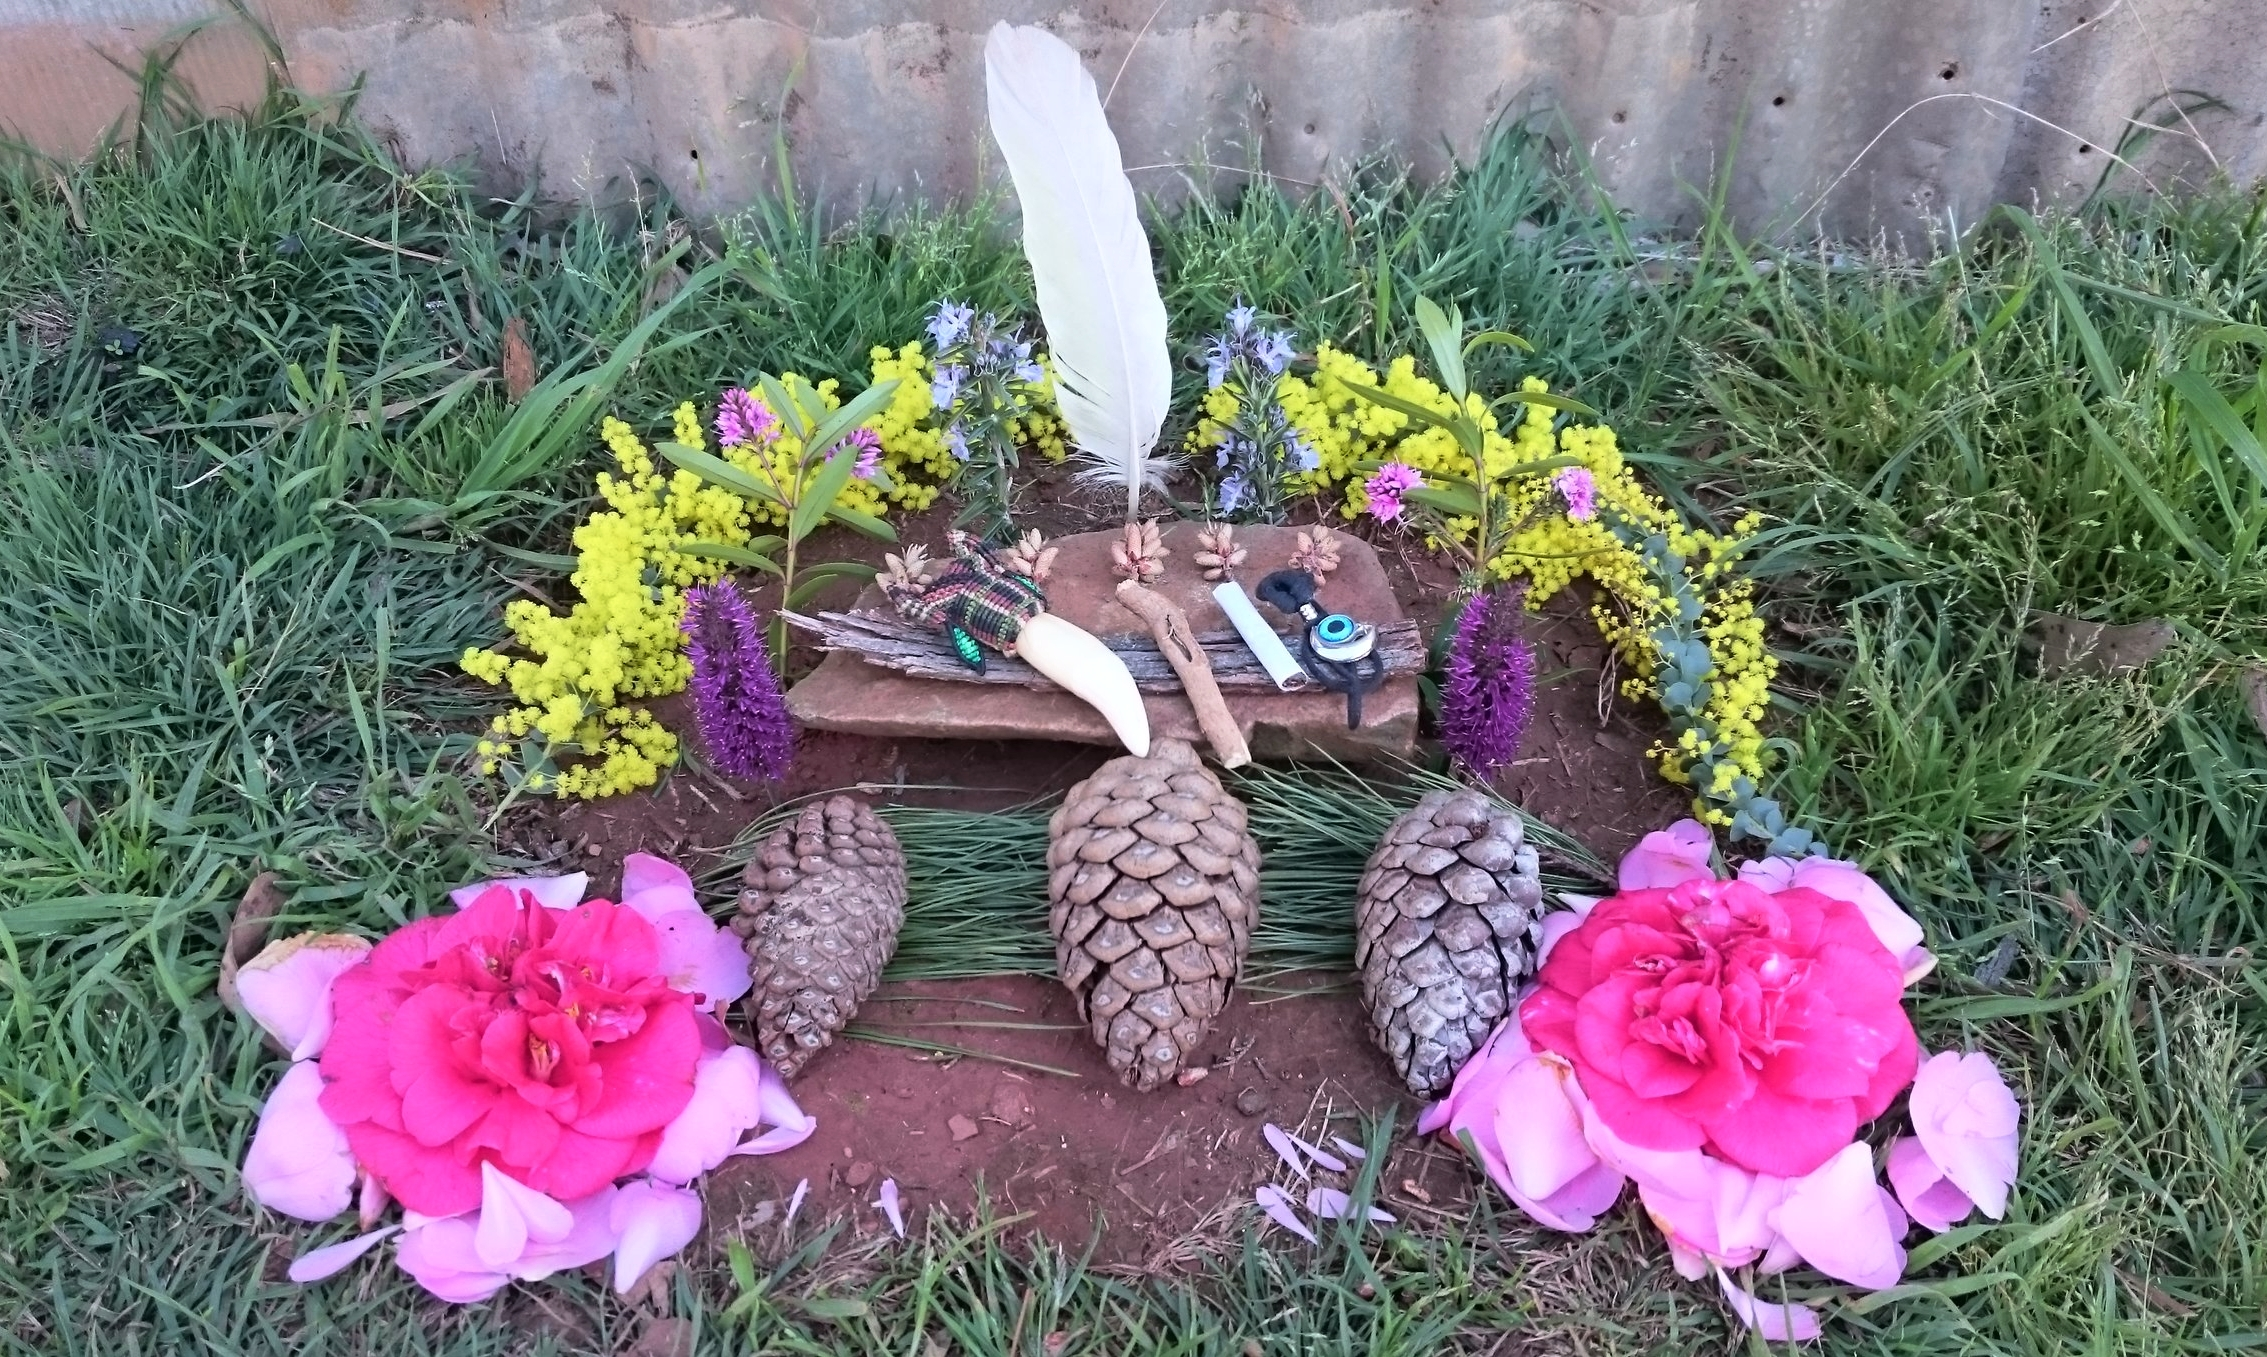 The ceremonial alter I constructed using materials from the surrounding sanctuary.